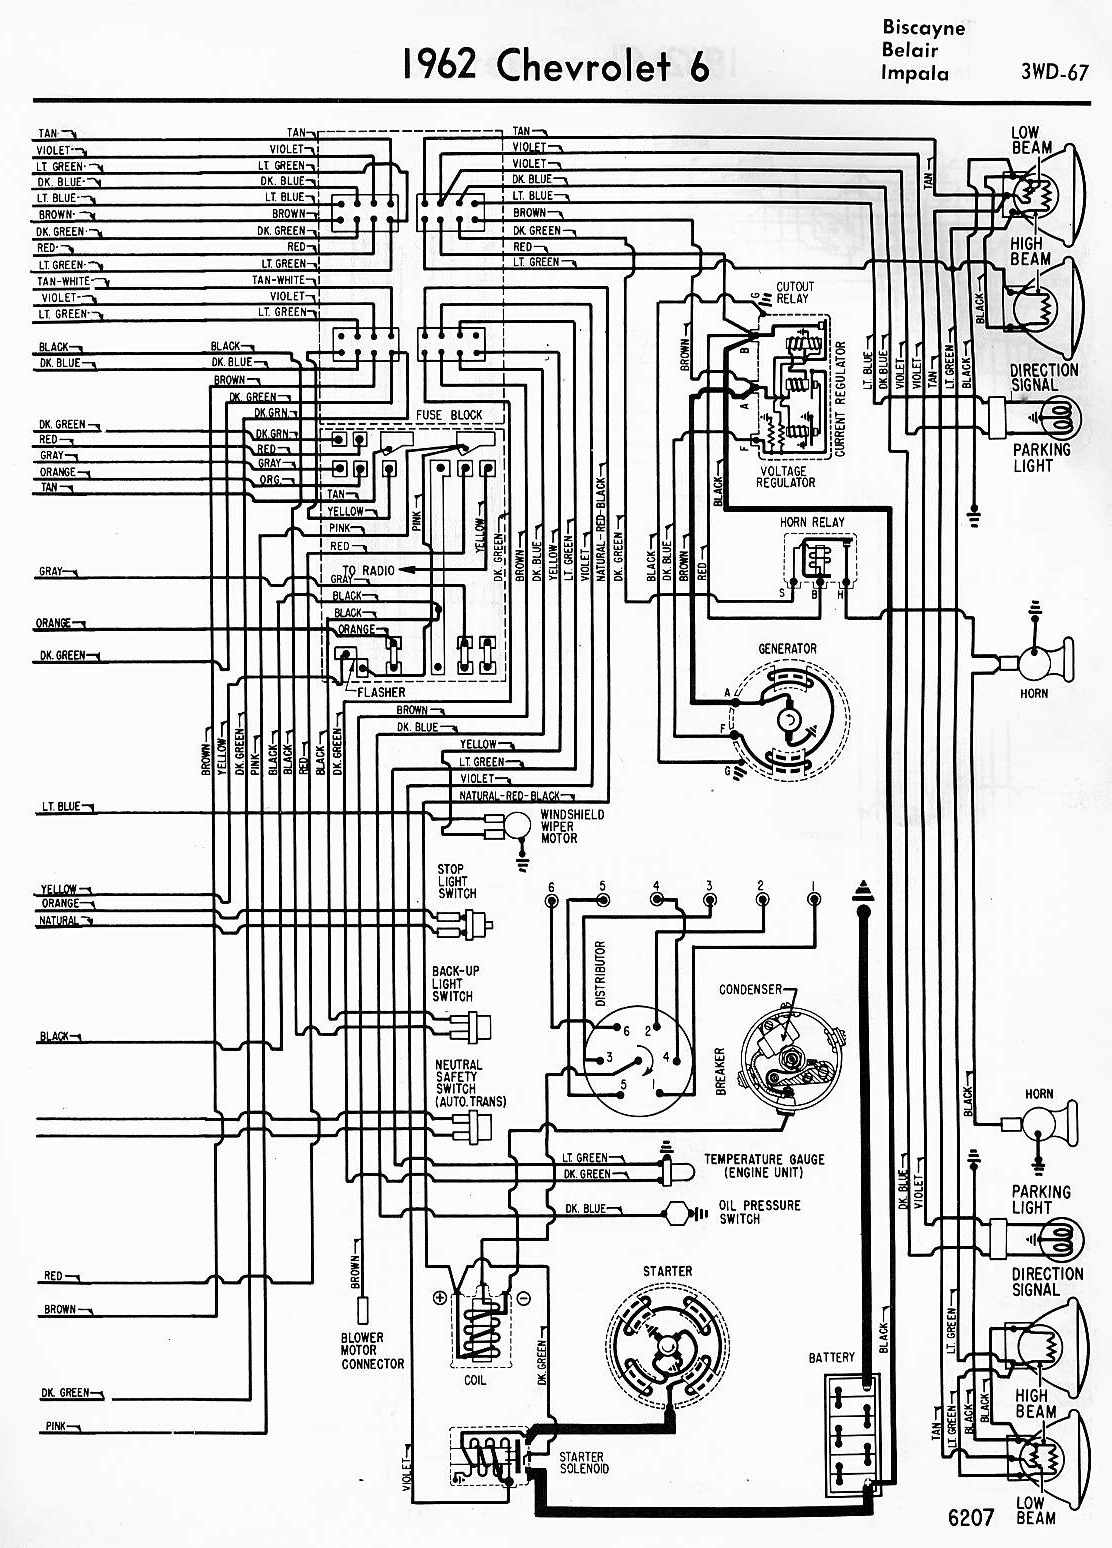 Electrical+Wiring+Diagram+Of+1964+Chevrolet+6 electrical wiring diagram of 1962 chevrolet 6 all about wiring 1962 ford fairlane wiring diagram at reclaimingppi.co